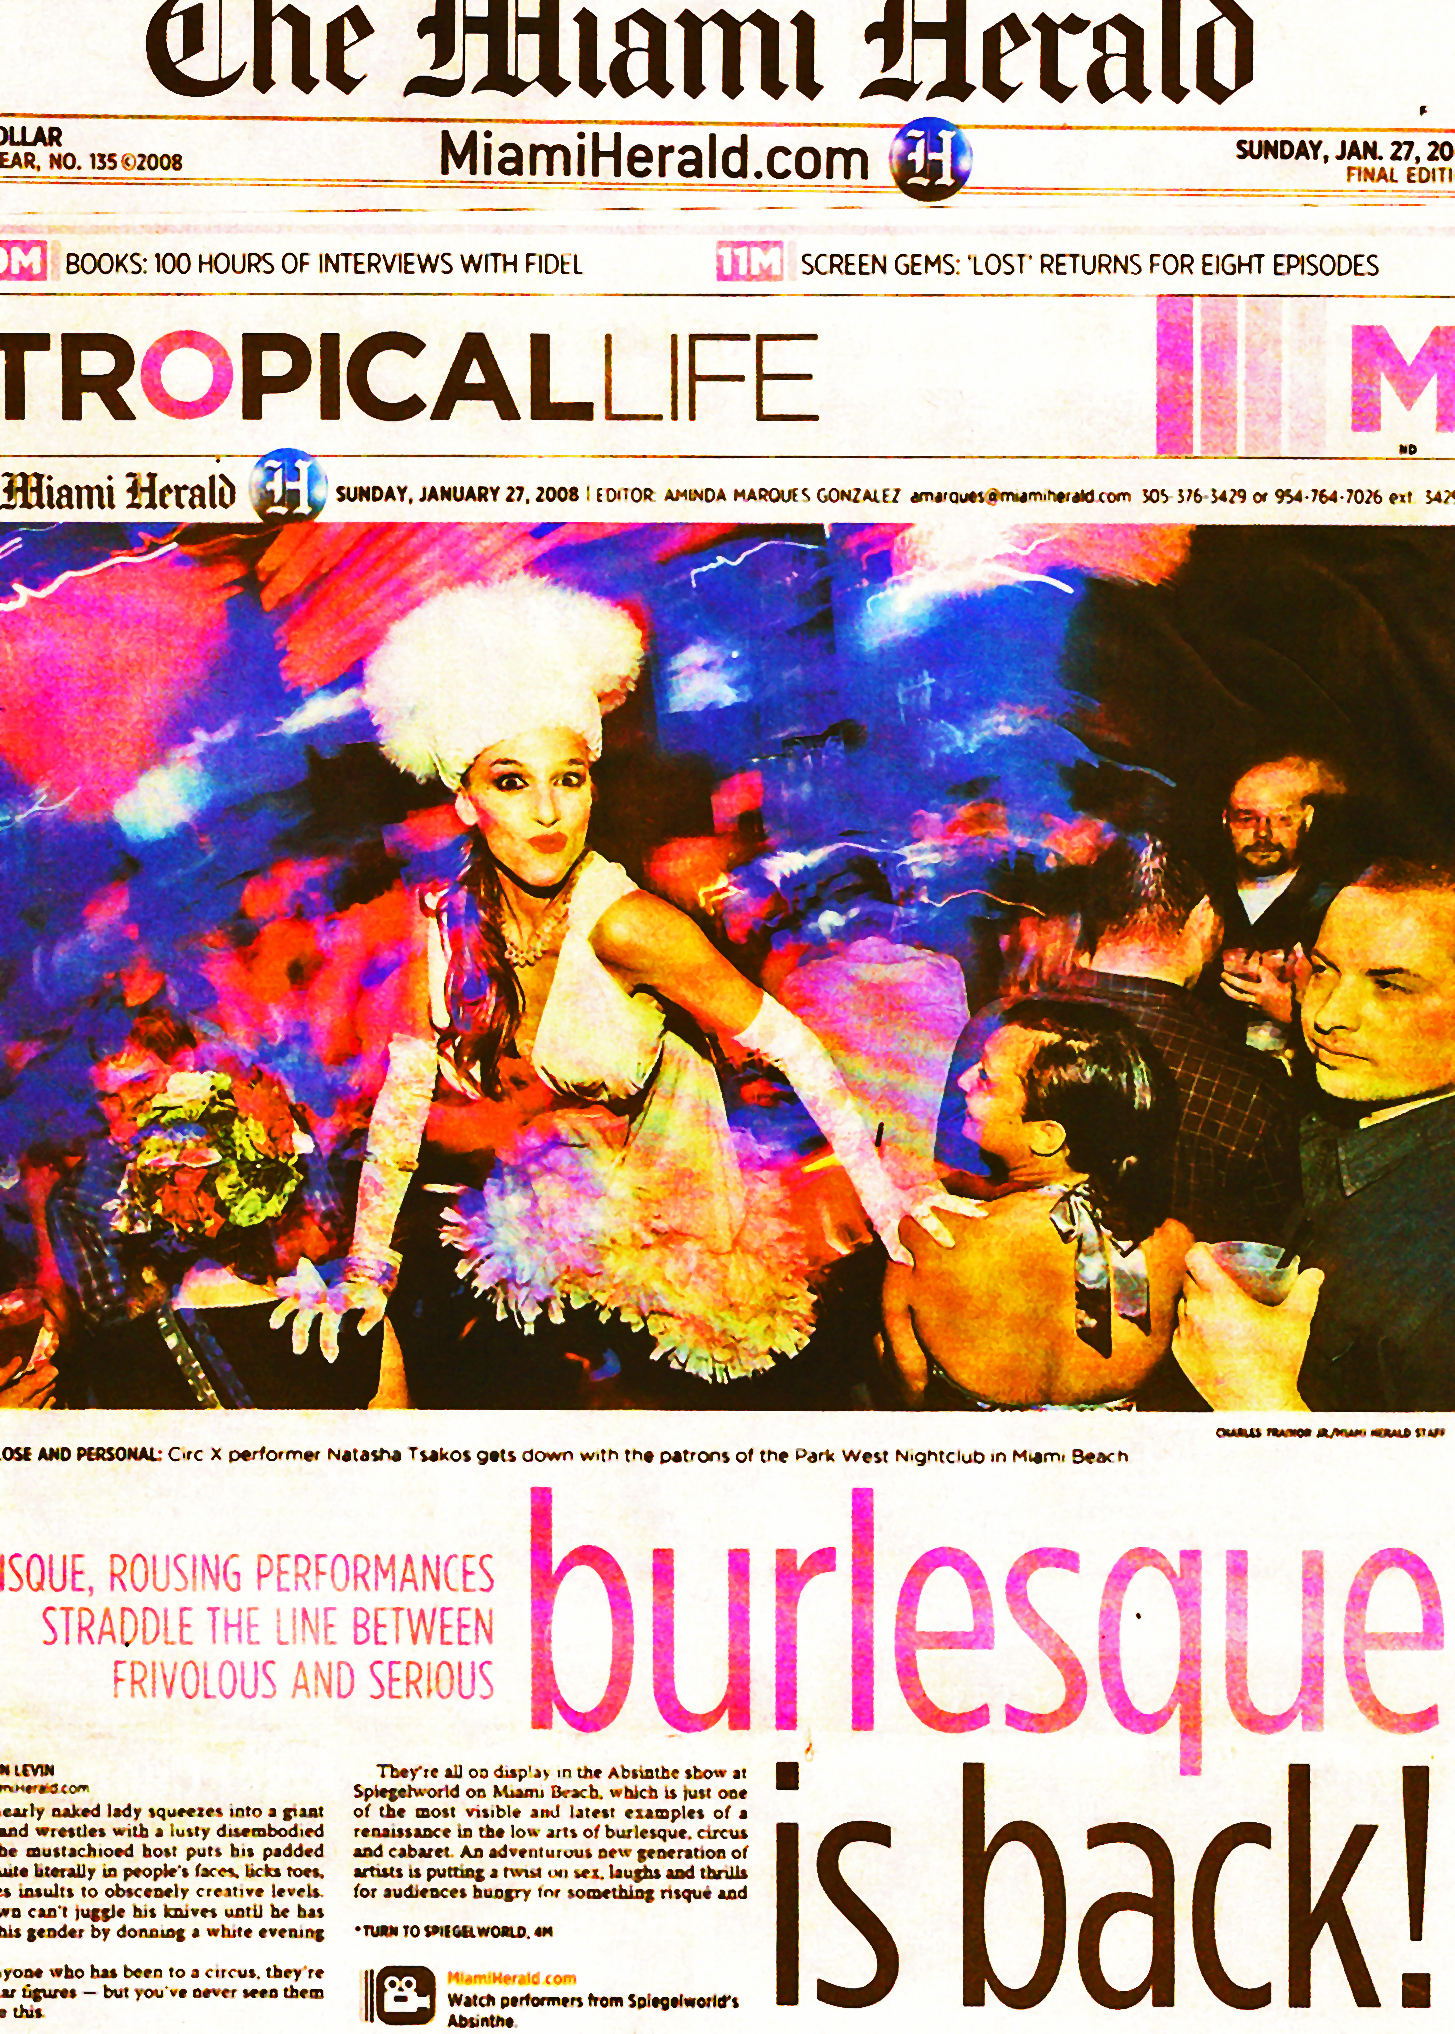 MIAMI HERALD burlesque is b